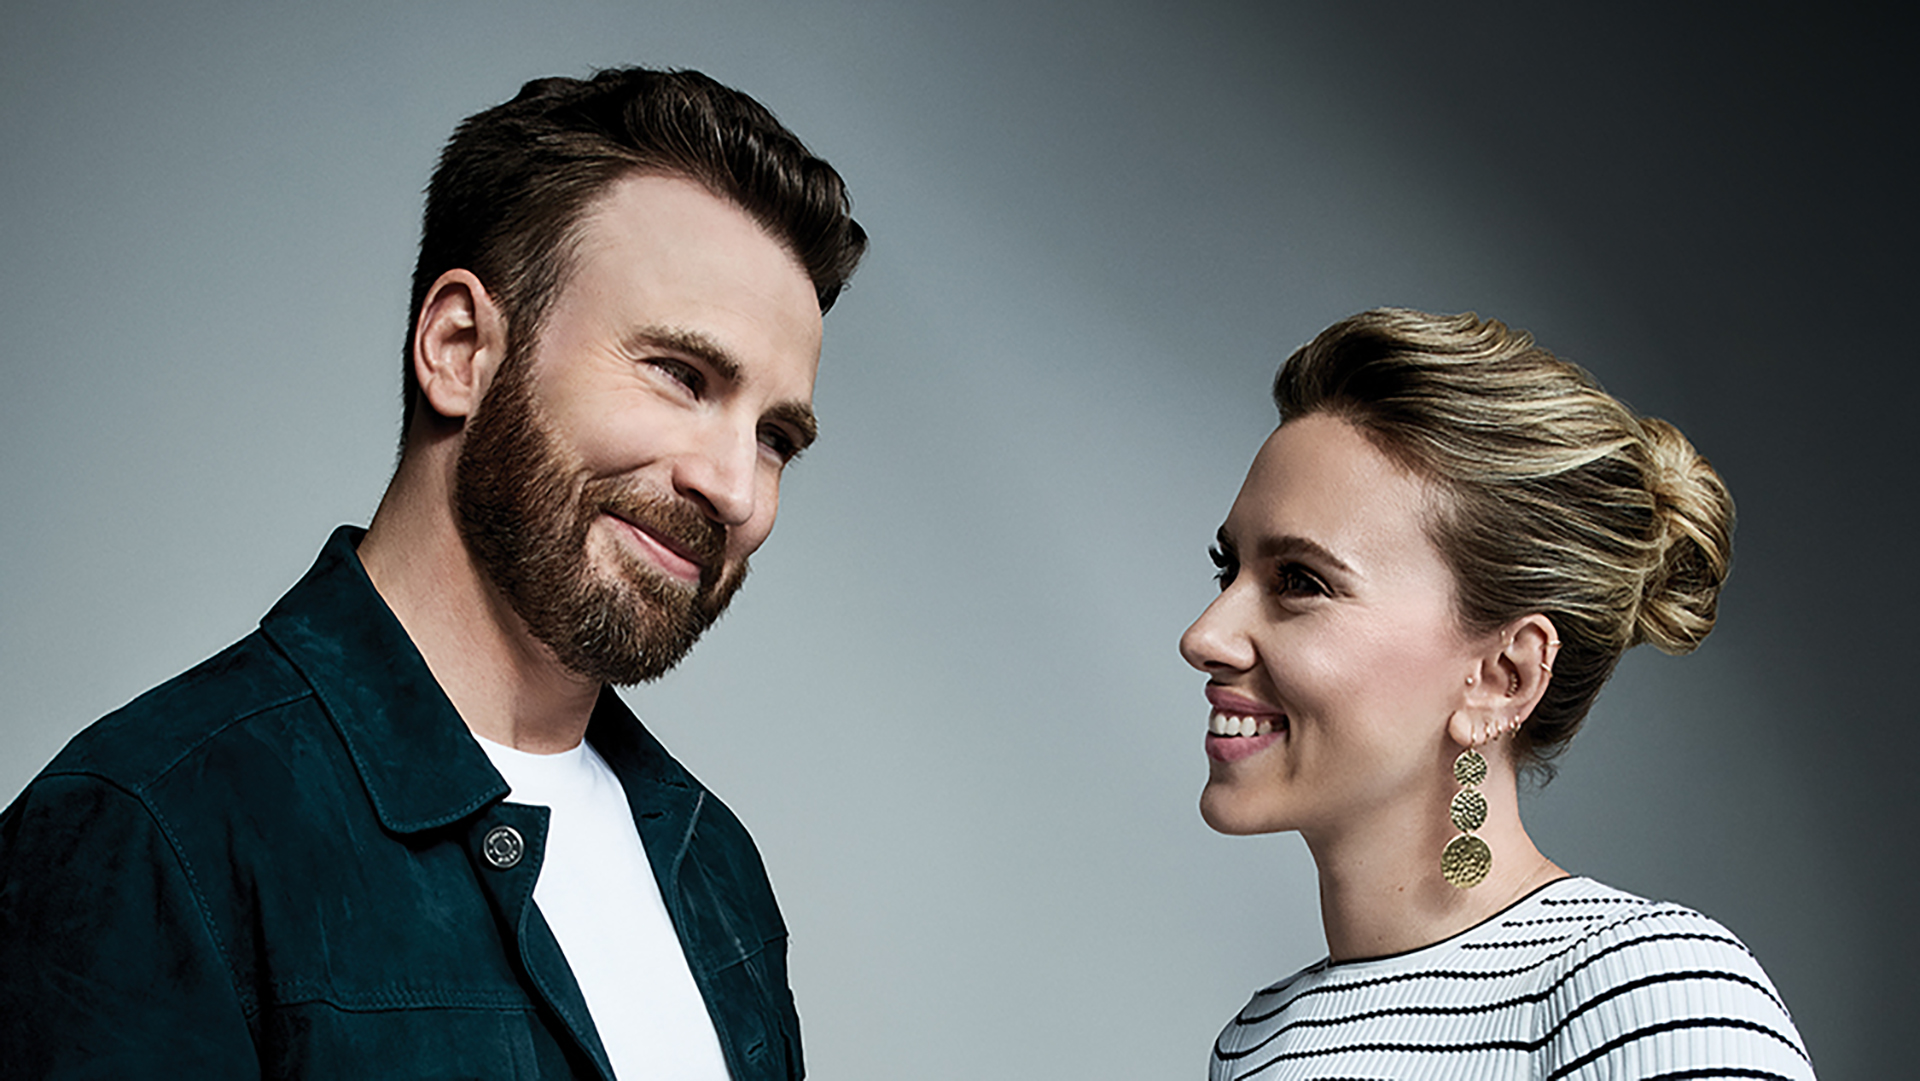 Chris Evans and Scarlett Johansson Return Together in Apple TV+ Movie ' Ghosted'